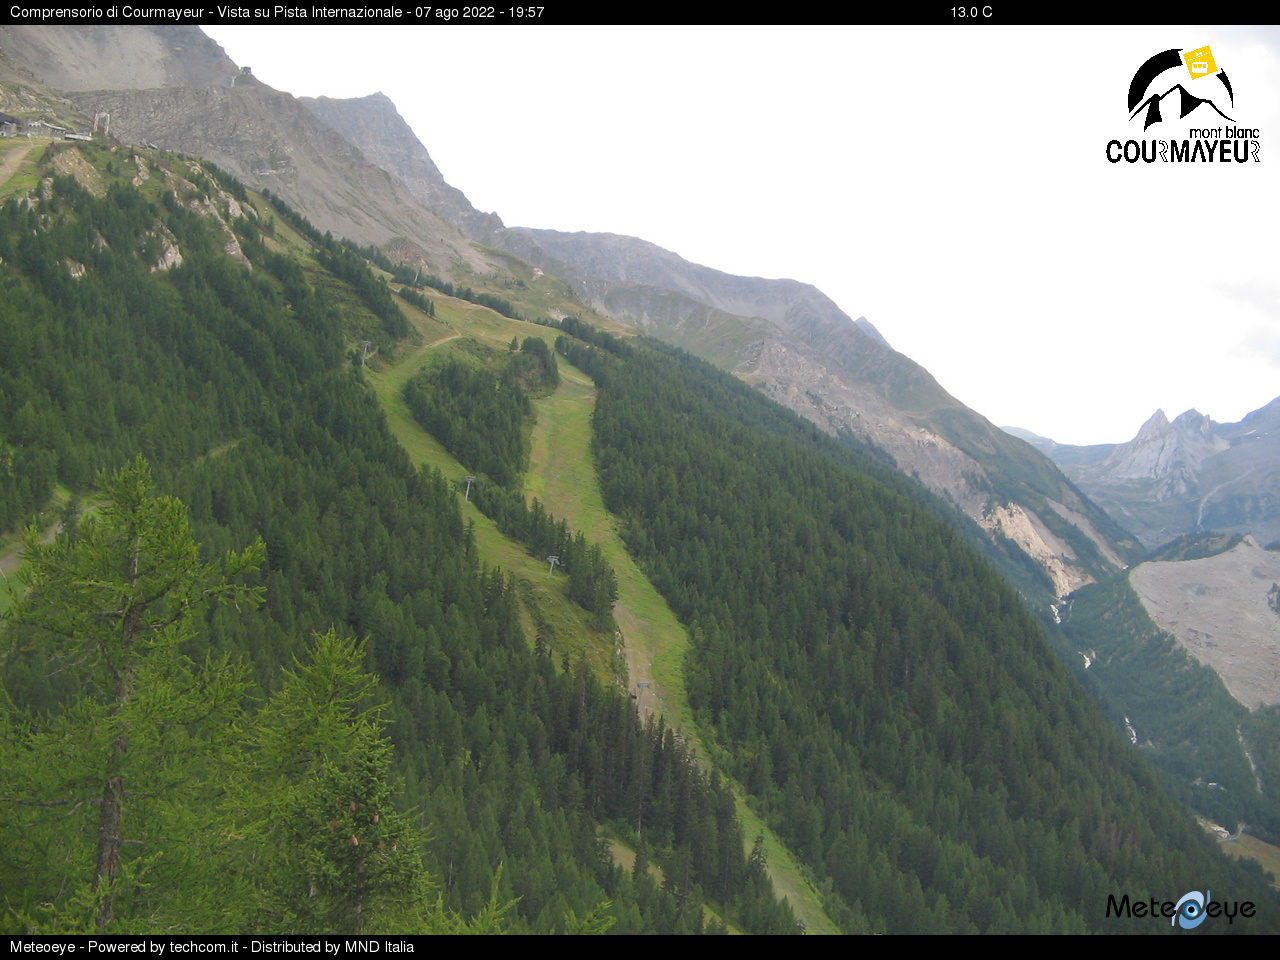 Webcam vista su pista Internazionale